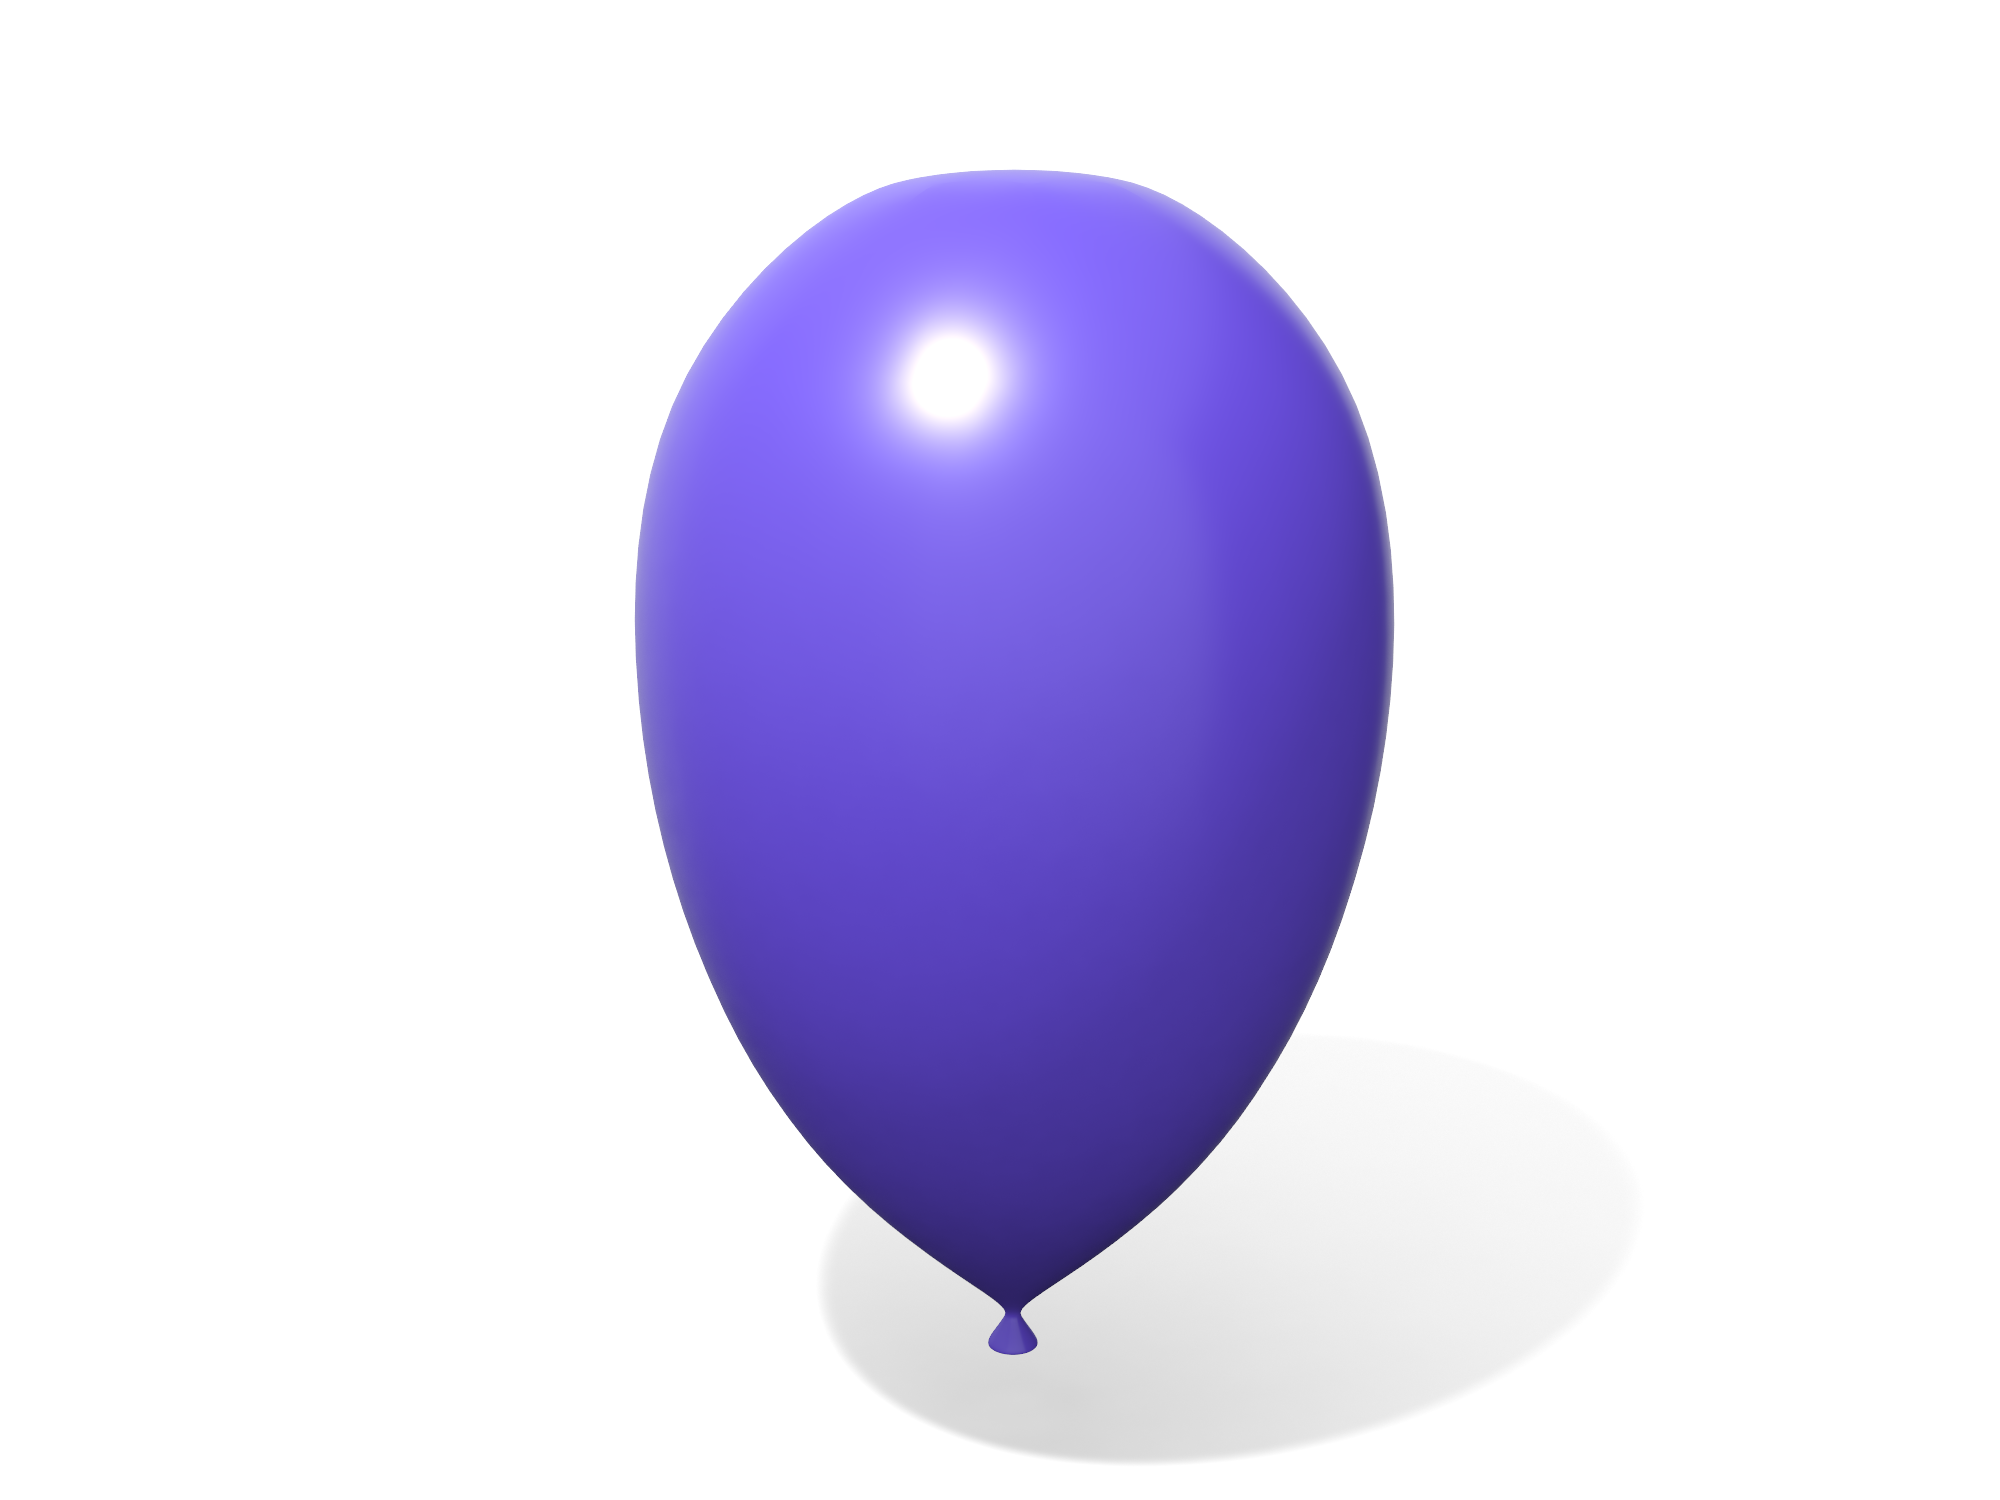 Stretched balloon - 3D design by Vectary assets Nov 5, 2018